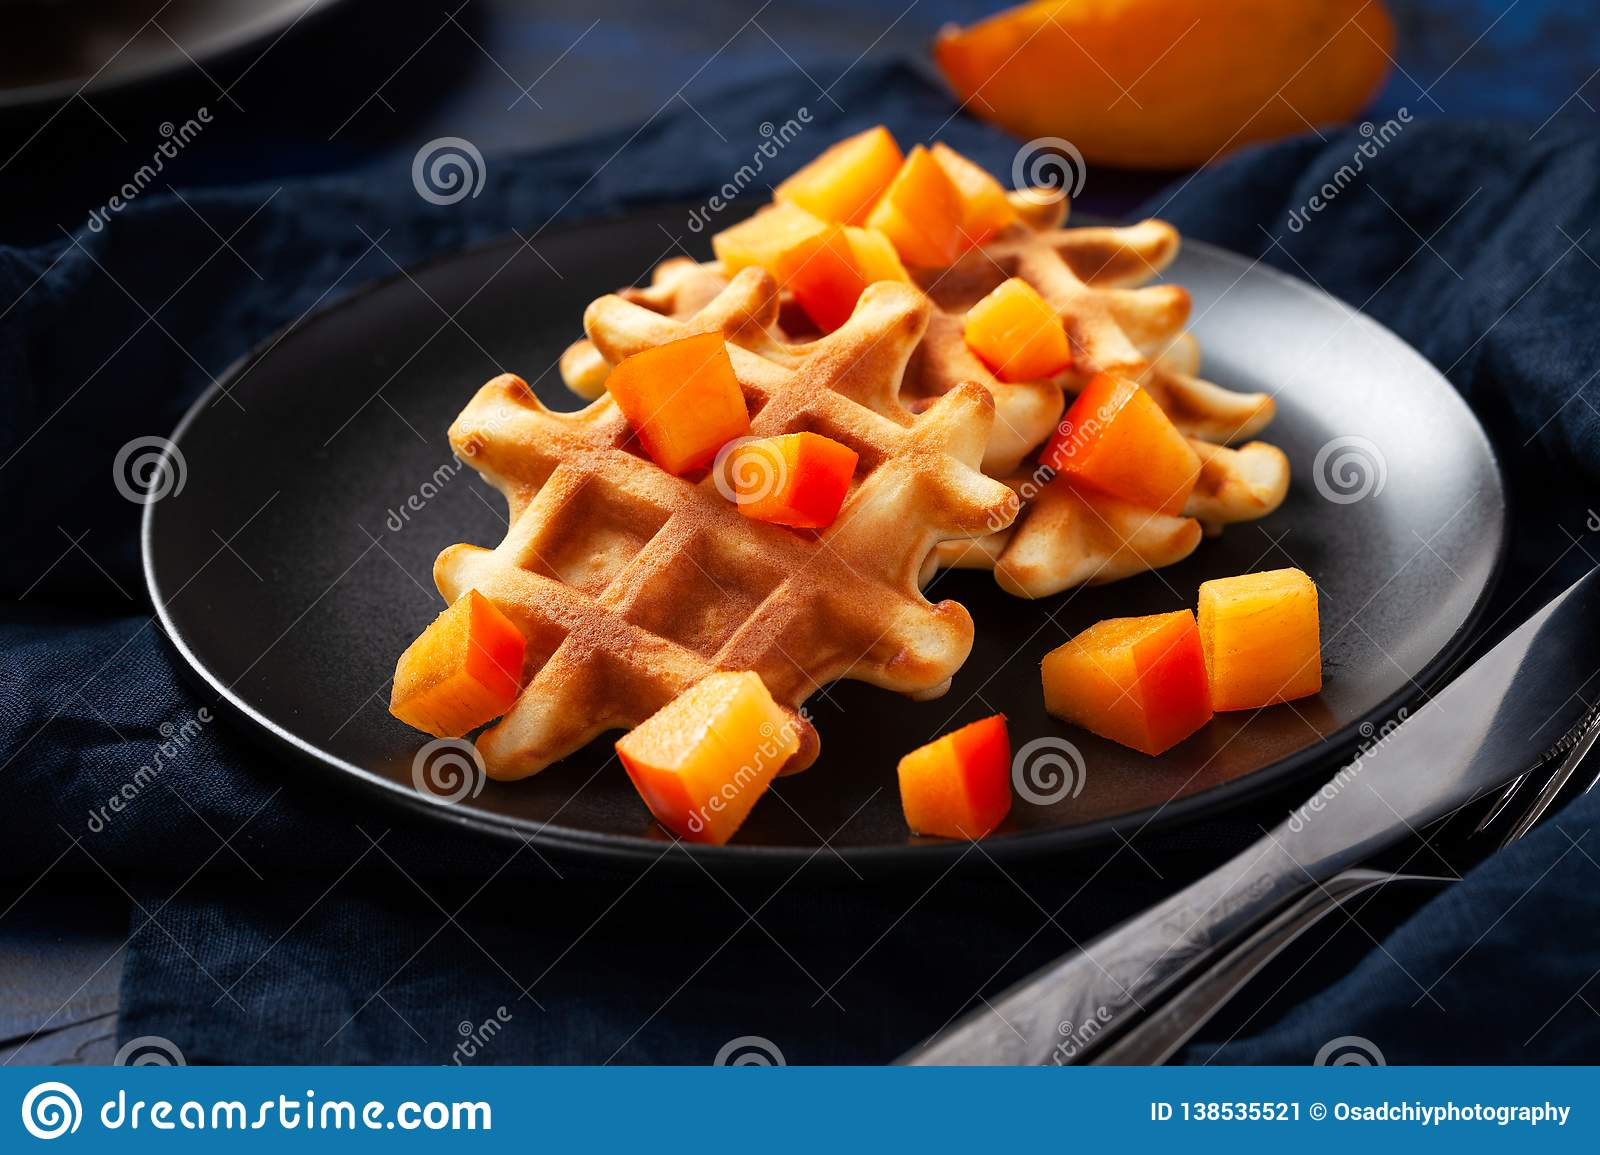 Belgian waffles with persimmon on black plate in dark mood style - close up horizontal photography